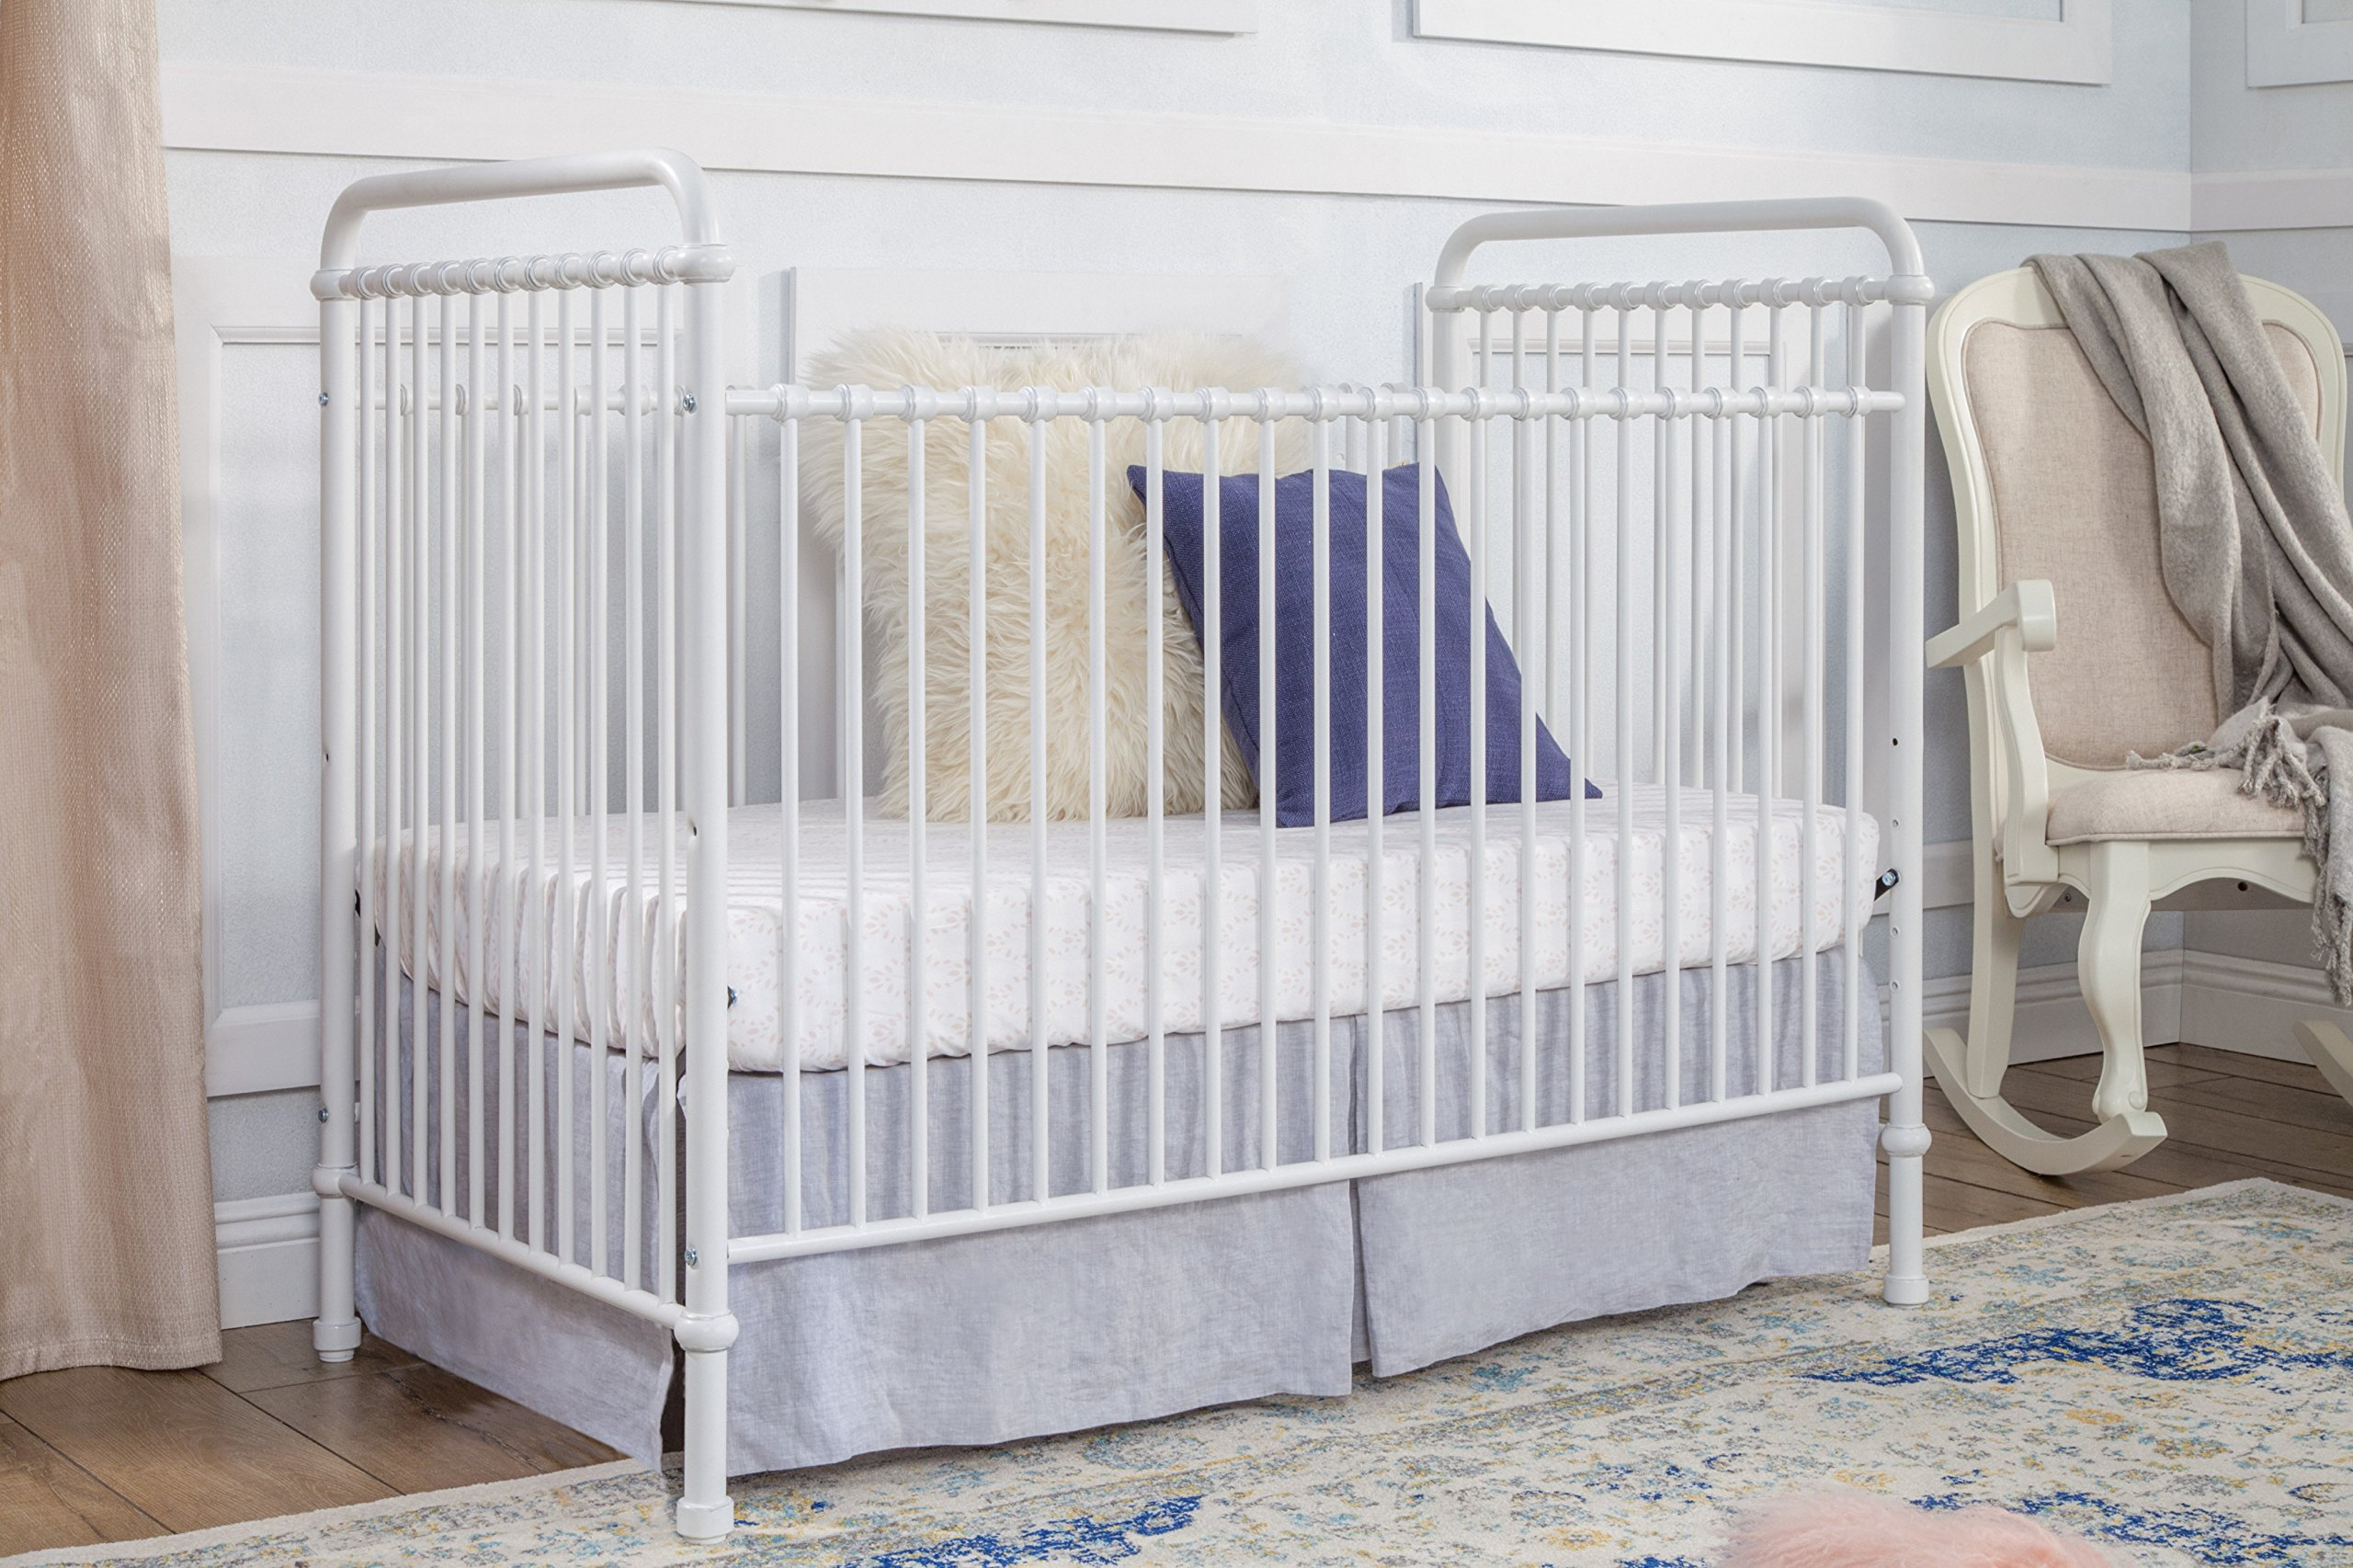 Million Dollar Baby Classic Abigail 3-in-1 Convertible Iron Crib,  Washed White by Million Dollar Baby Classic (Image #2)